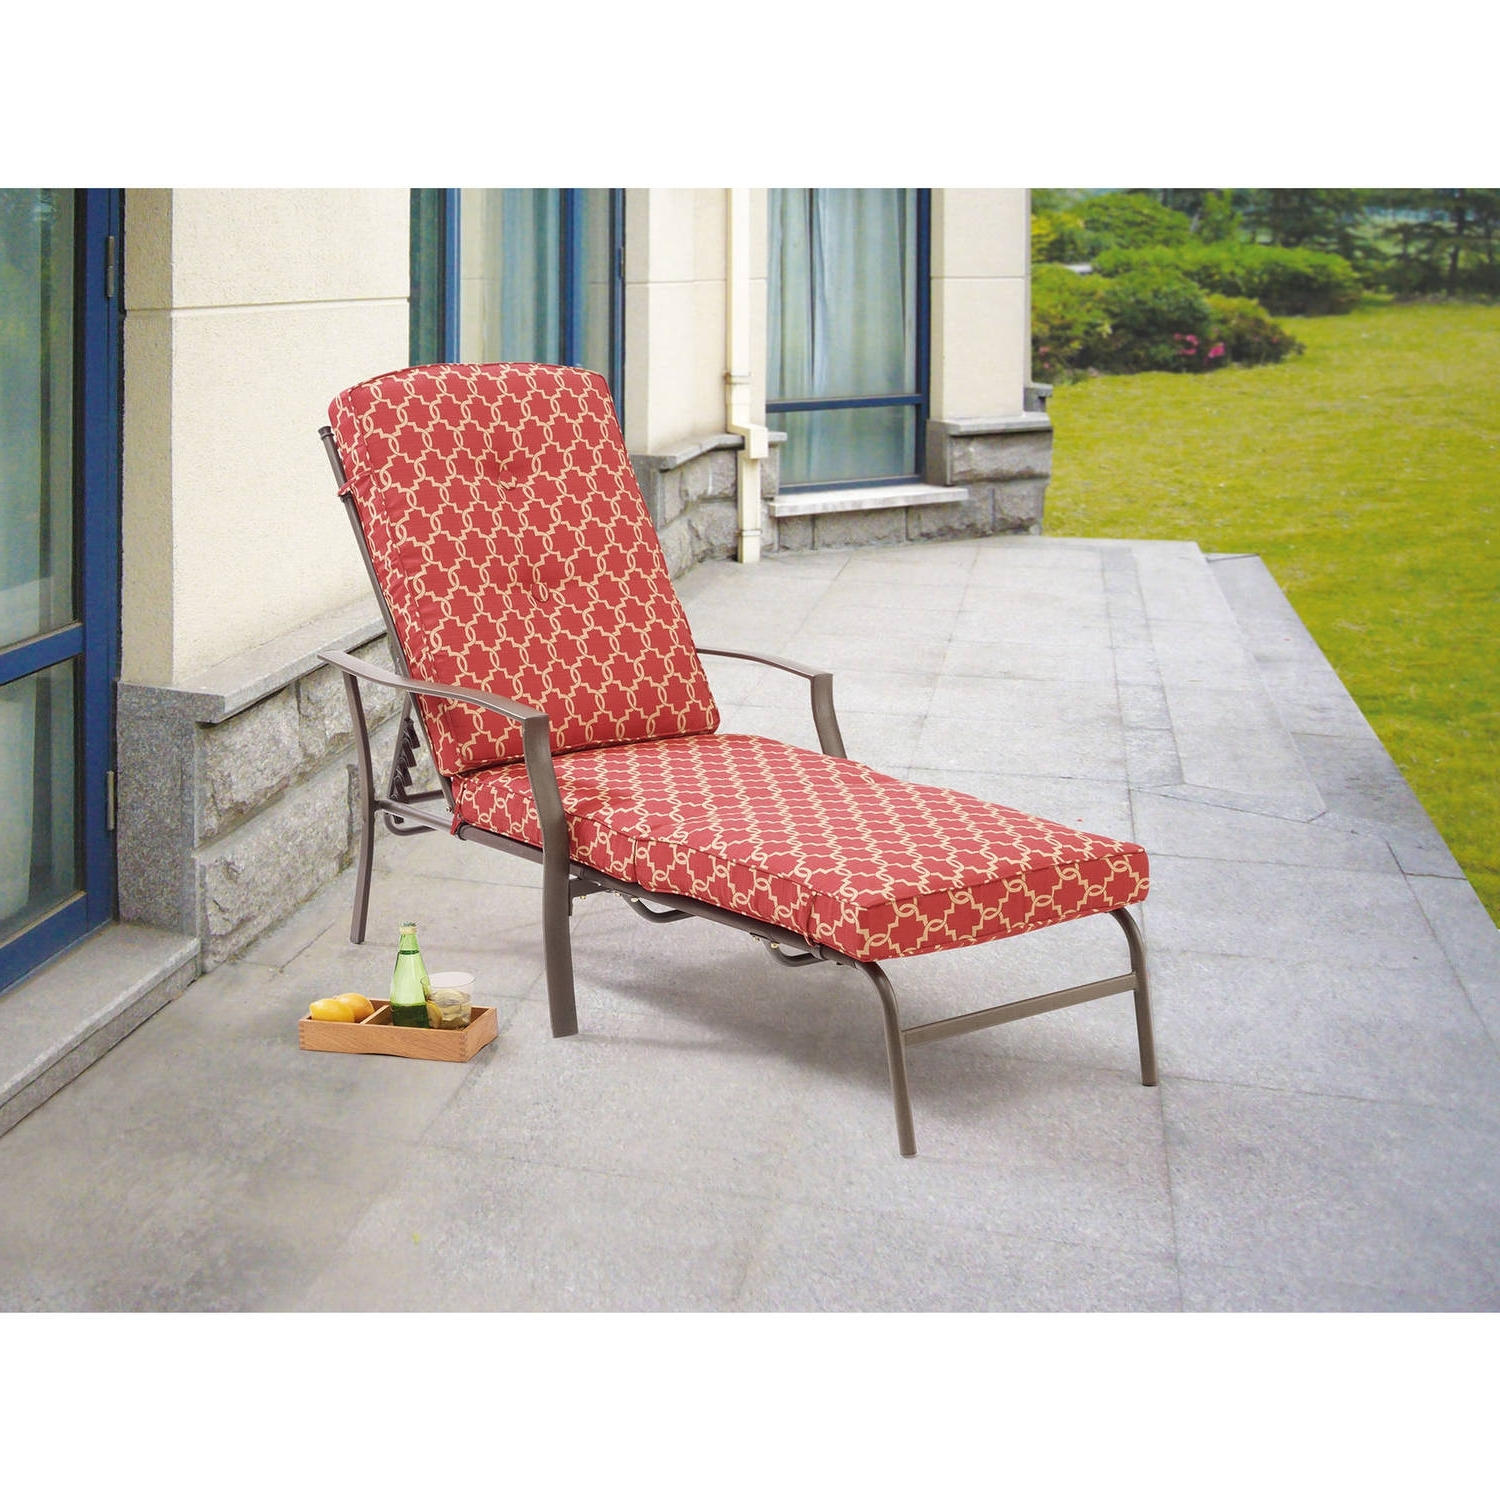 Current Outdoor Chaise Lounge Chairs At Walmart Intended For Cosco Outdoor Adjustable Aluminum Chaise Lounge Chair Serene Ridge (View 3 of 15)